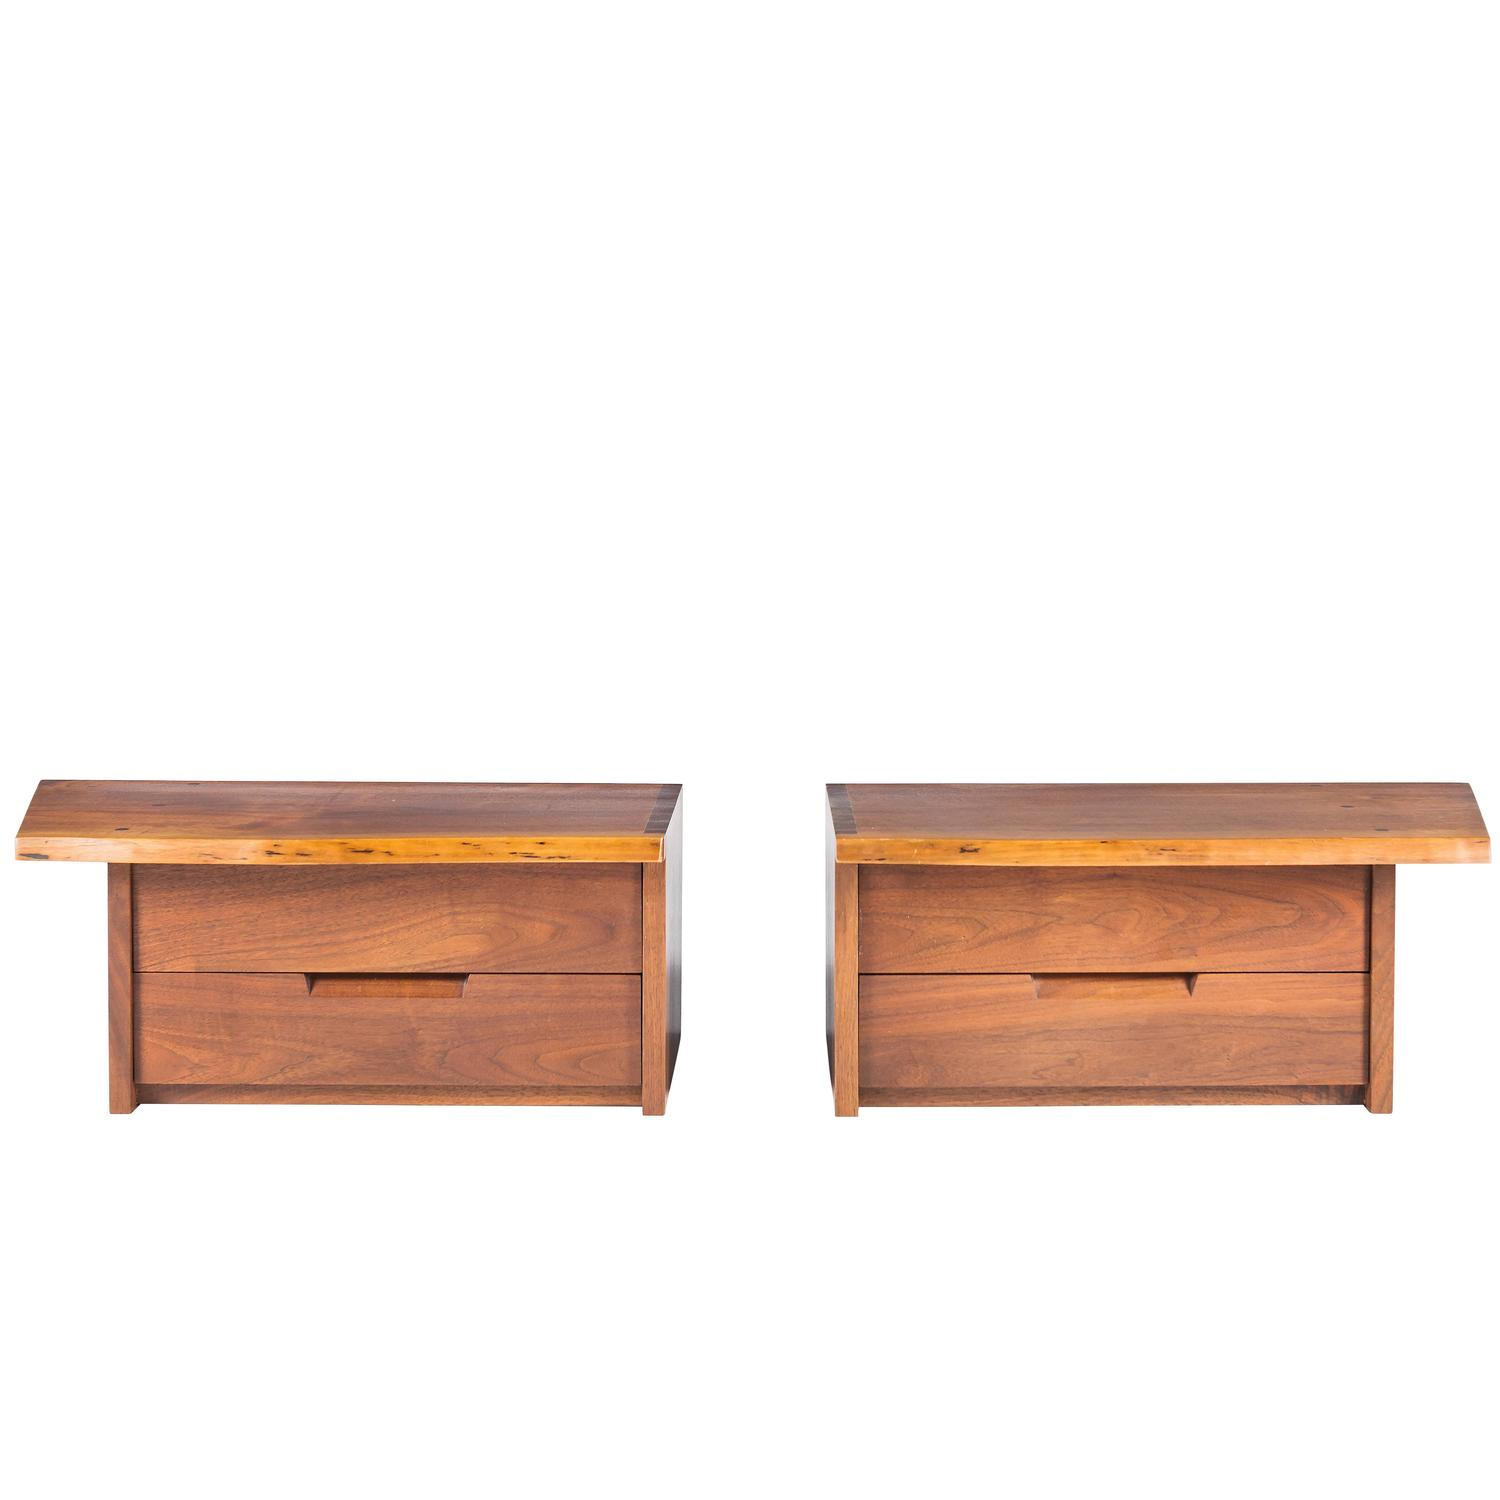 george nakashima wall mounted nightstands for sale at 1stdibs